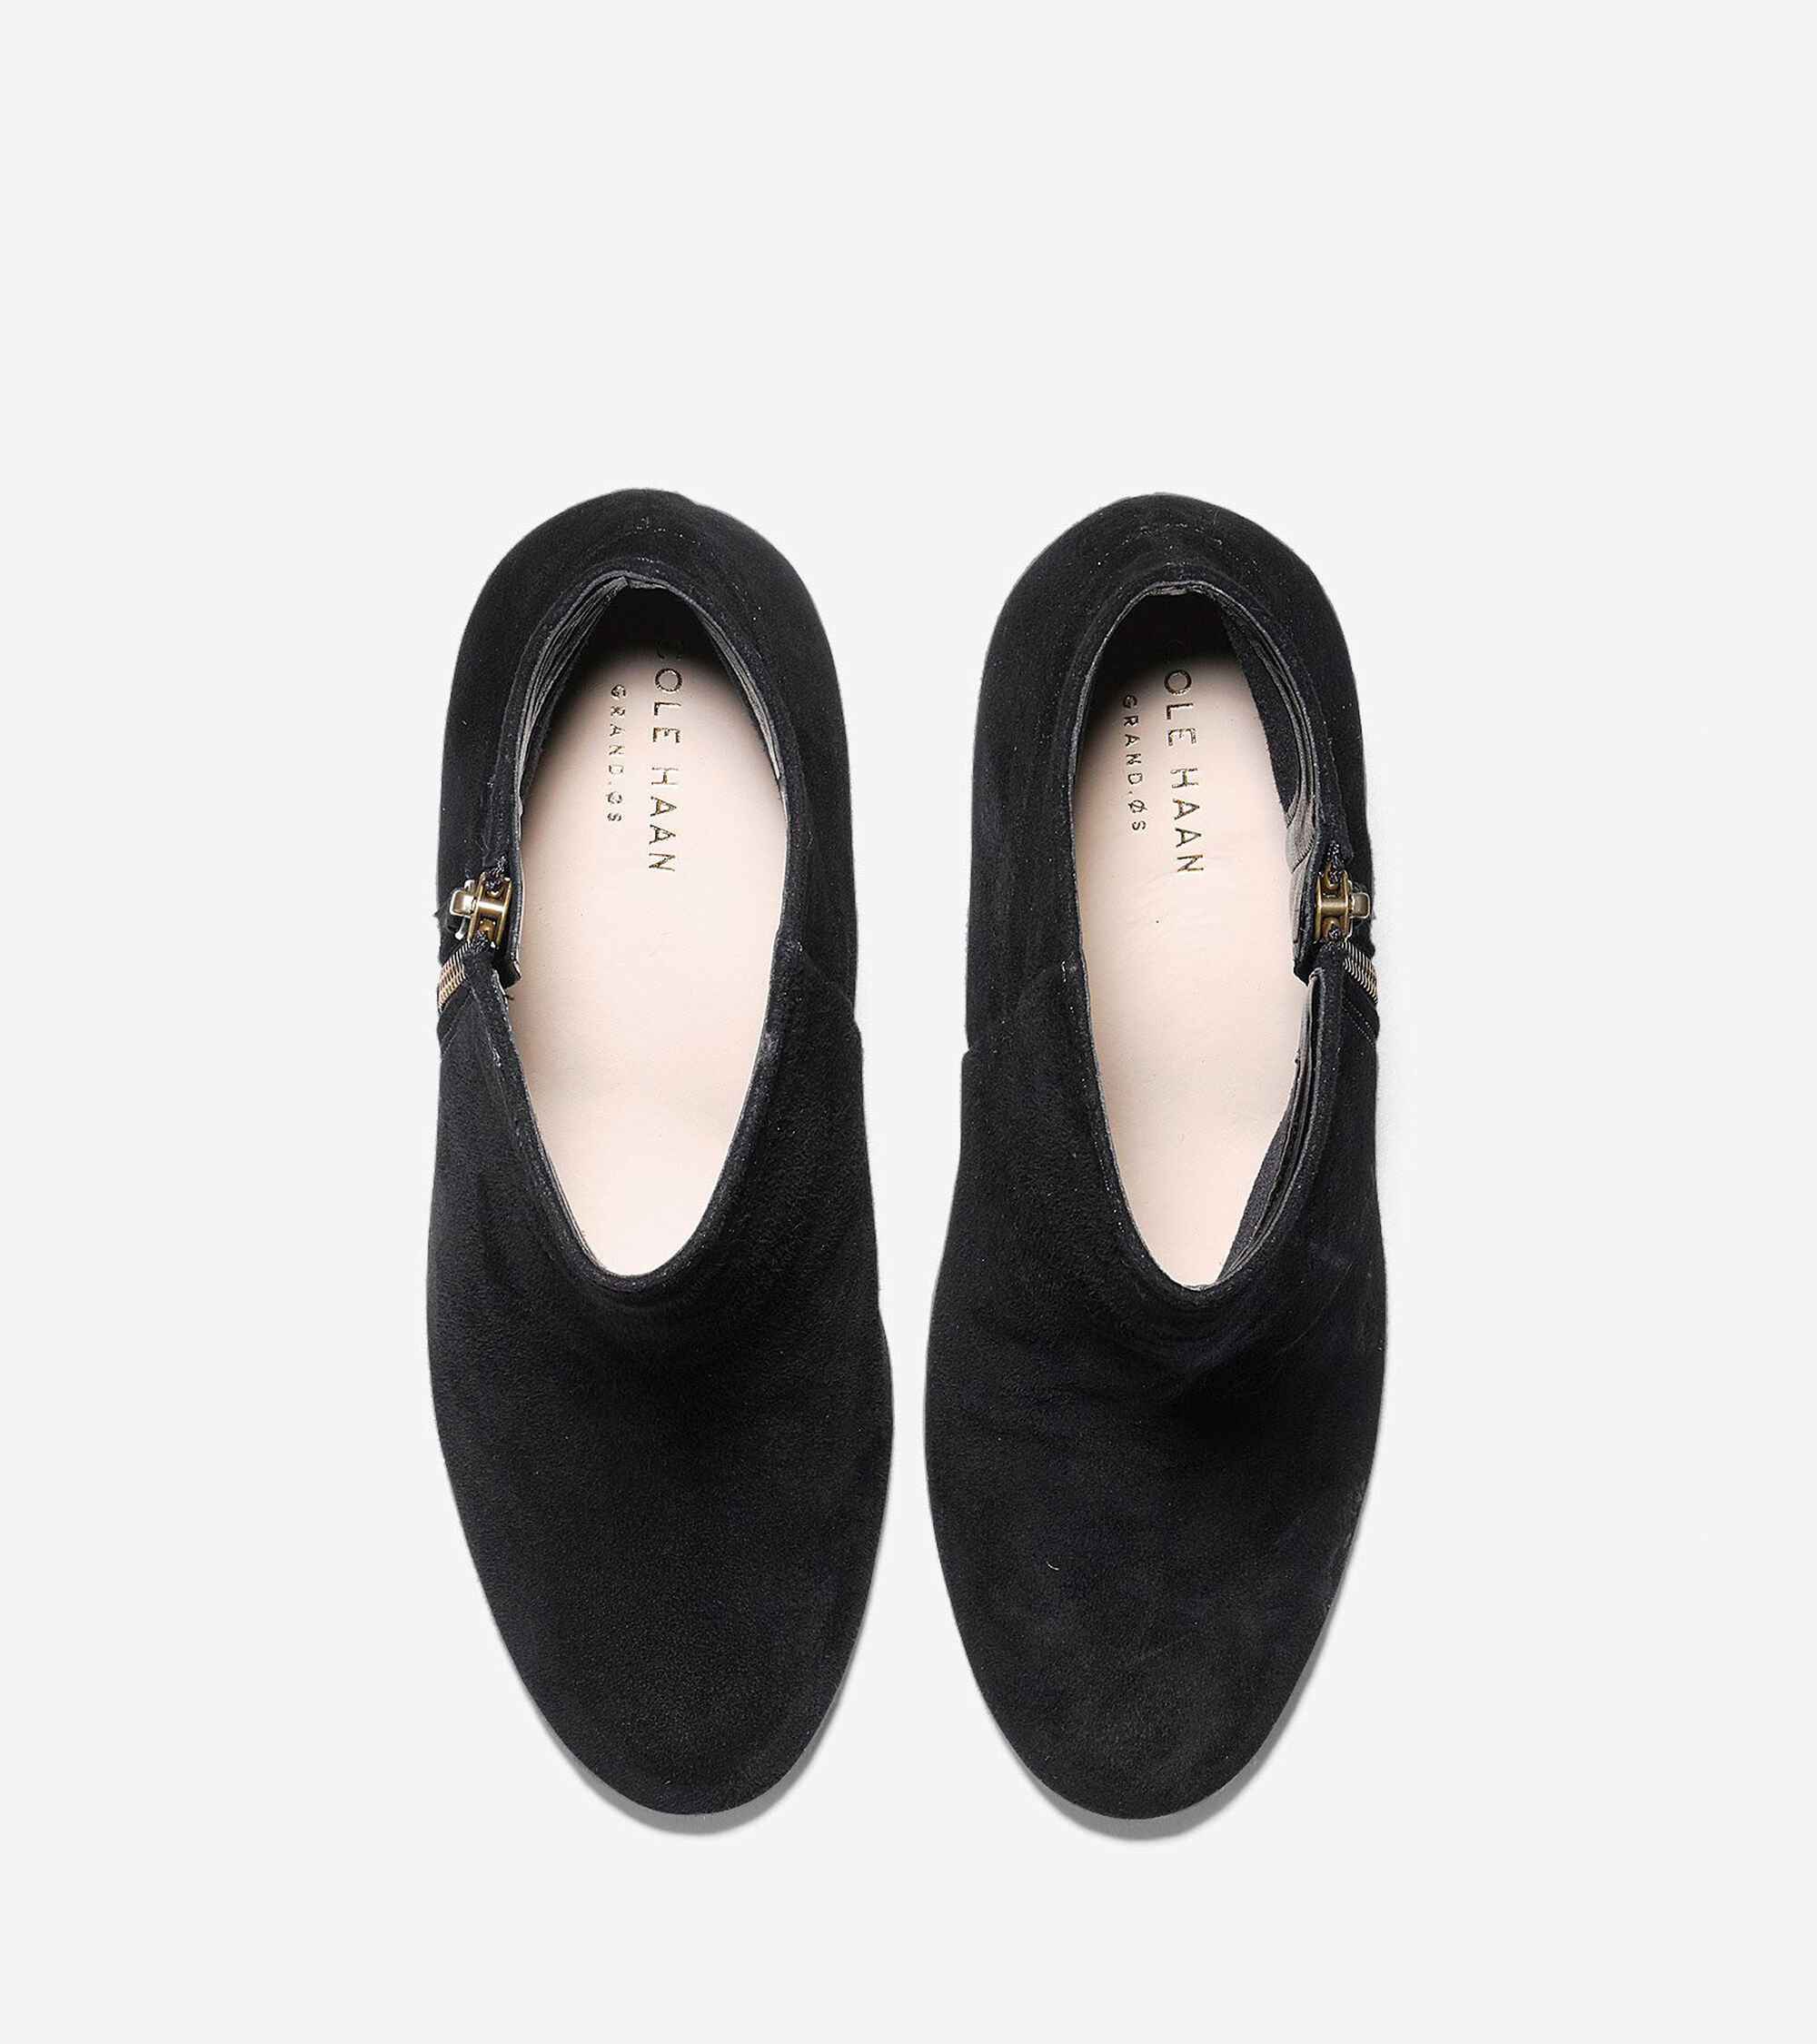 Cole Haan is a global men's and women's footwear and accessories brand that was founded in Chicago in Cole Haan currently has headquarters in both New York City and Greenland, New Hampshire.